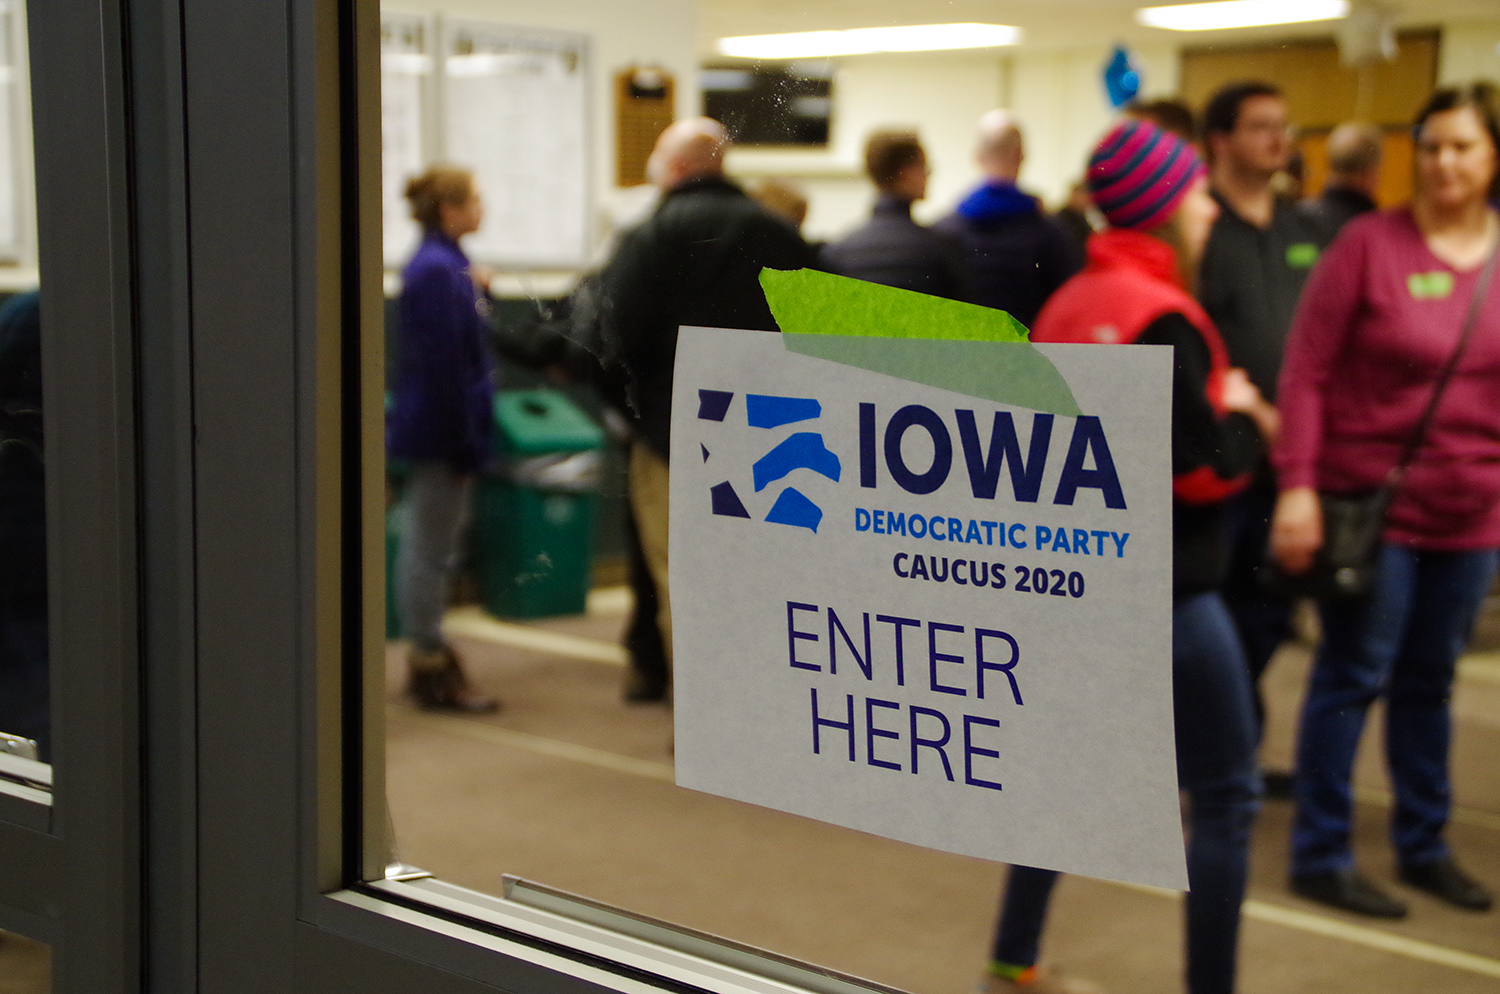 Community members attend the Iowa caucuses at West high on Monday, Feb. 3rd.